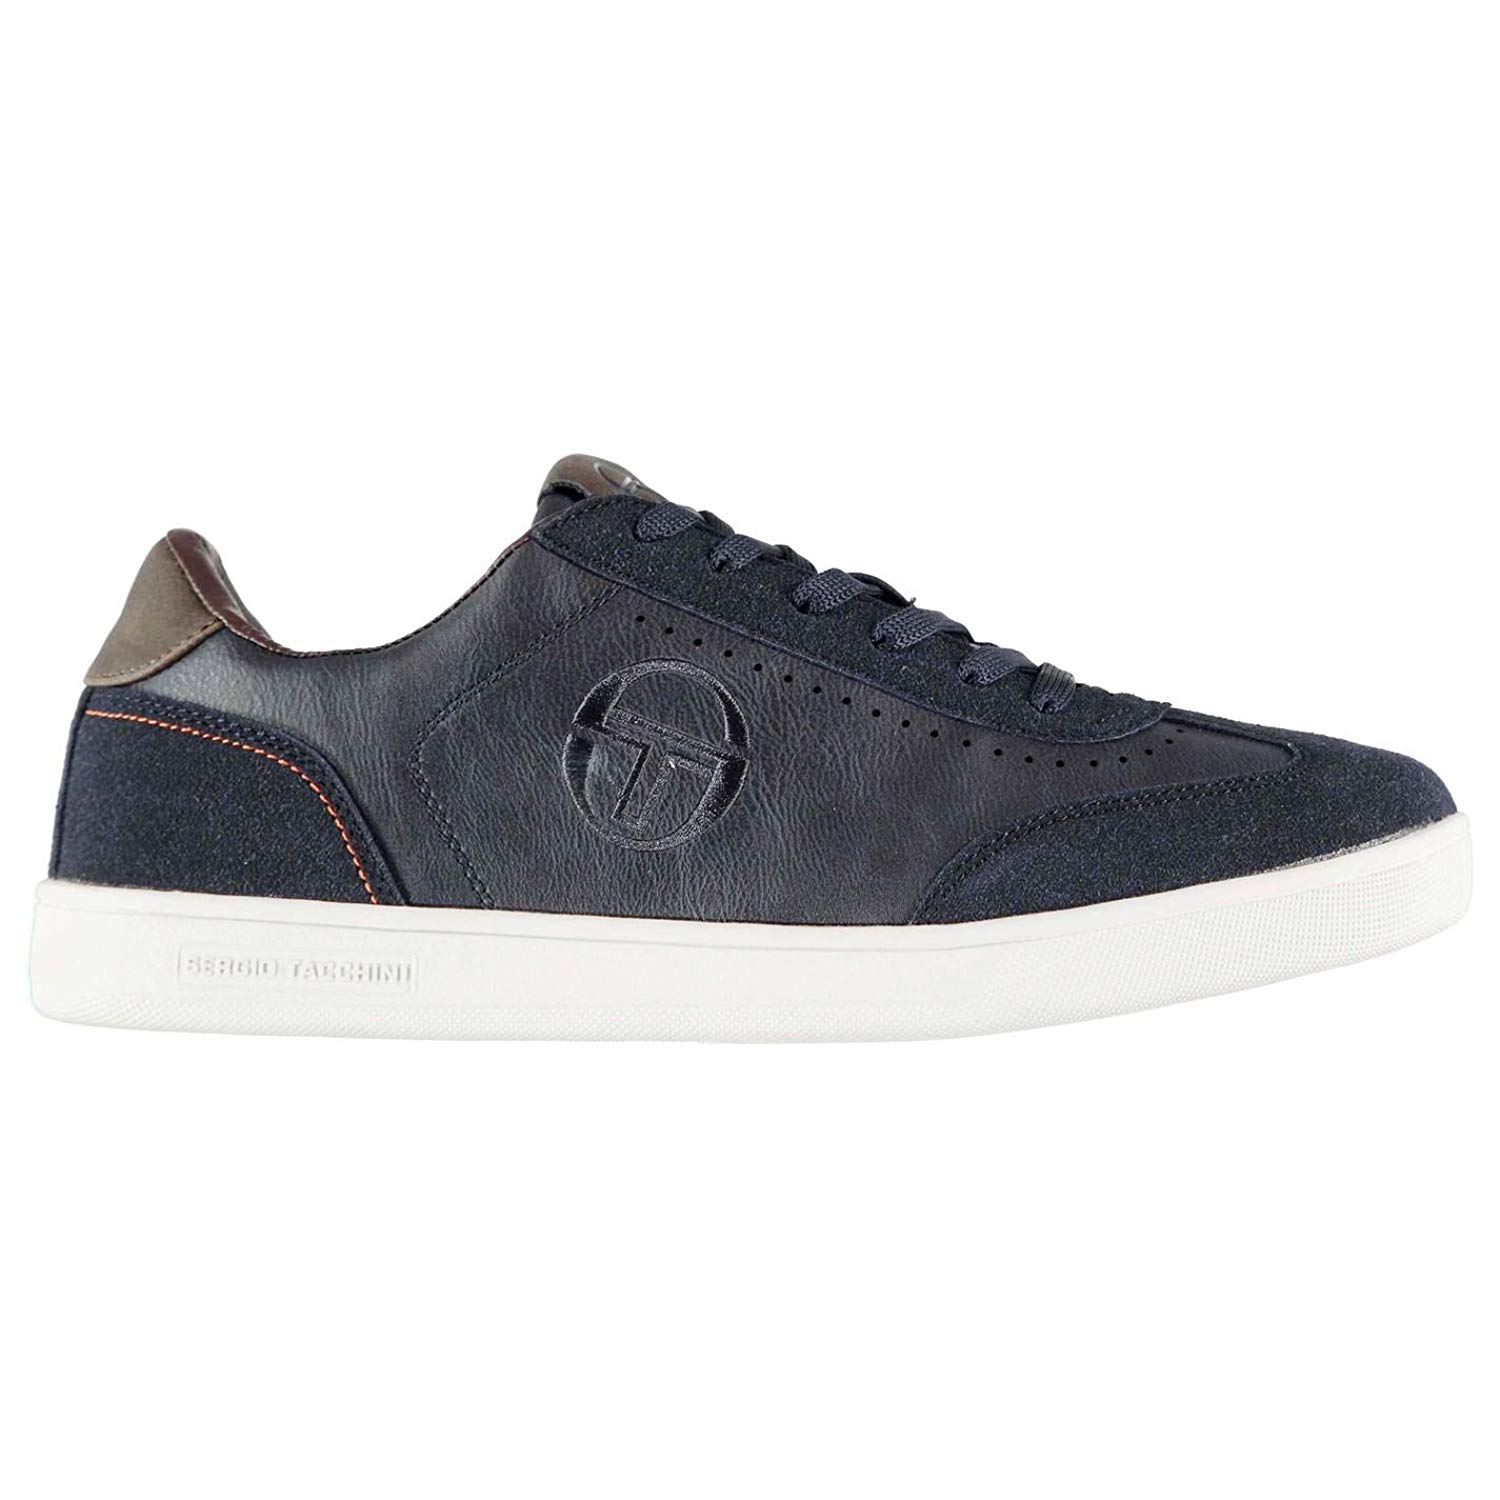 Get Quotations · Sergio Tacchini Mens Brighton Trainers Low Lace up Shoes 7620f322c9c7d